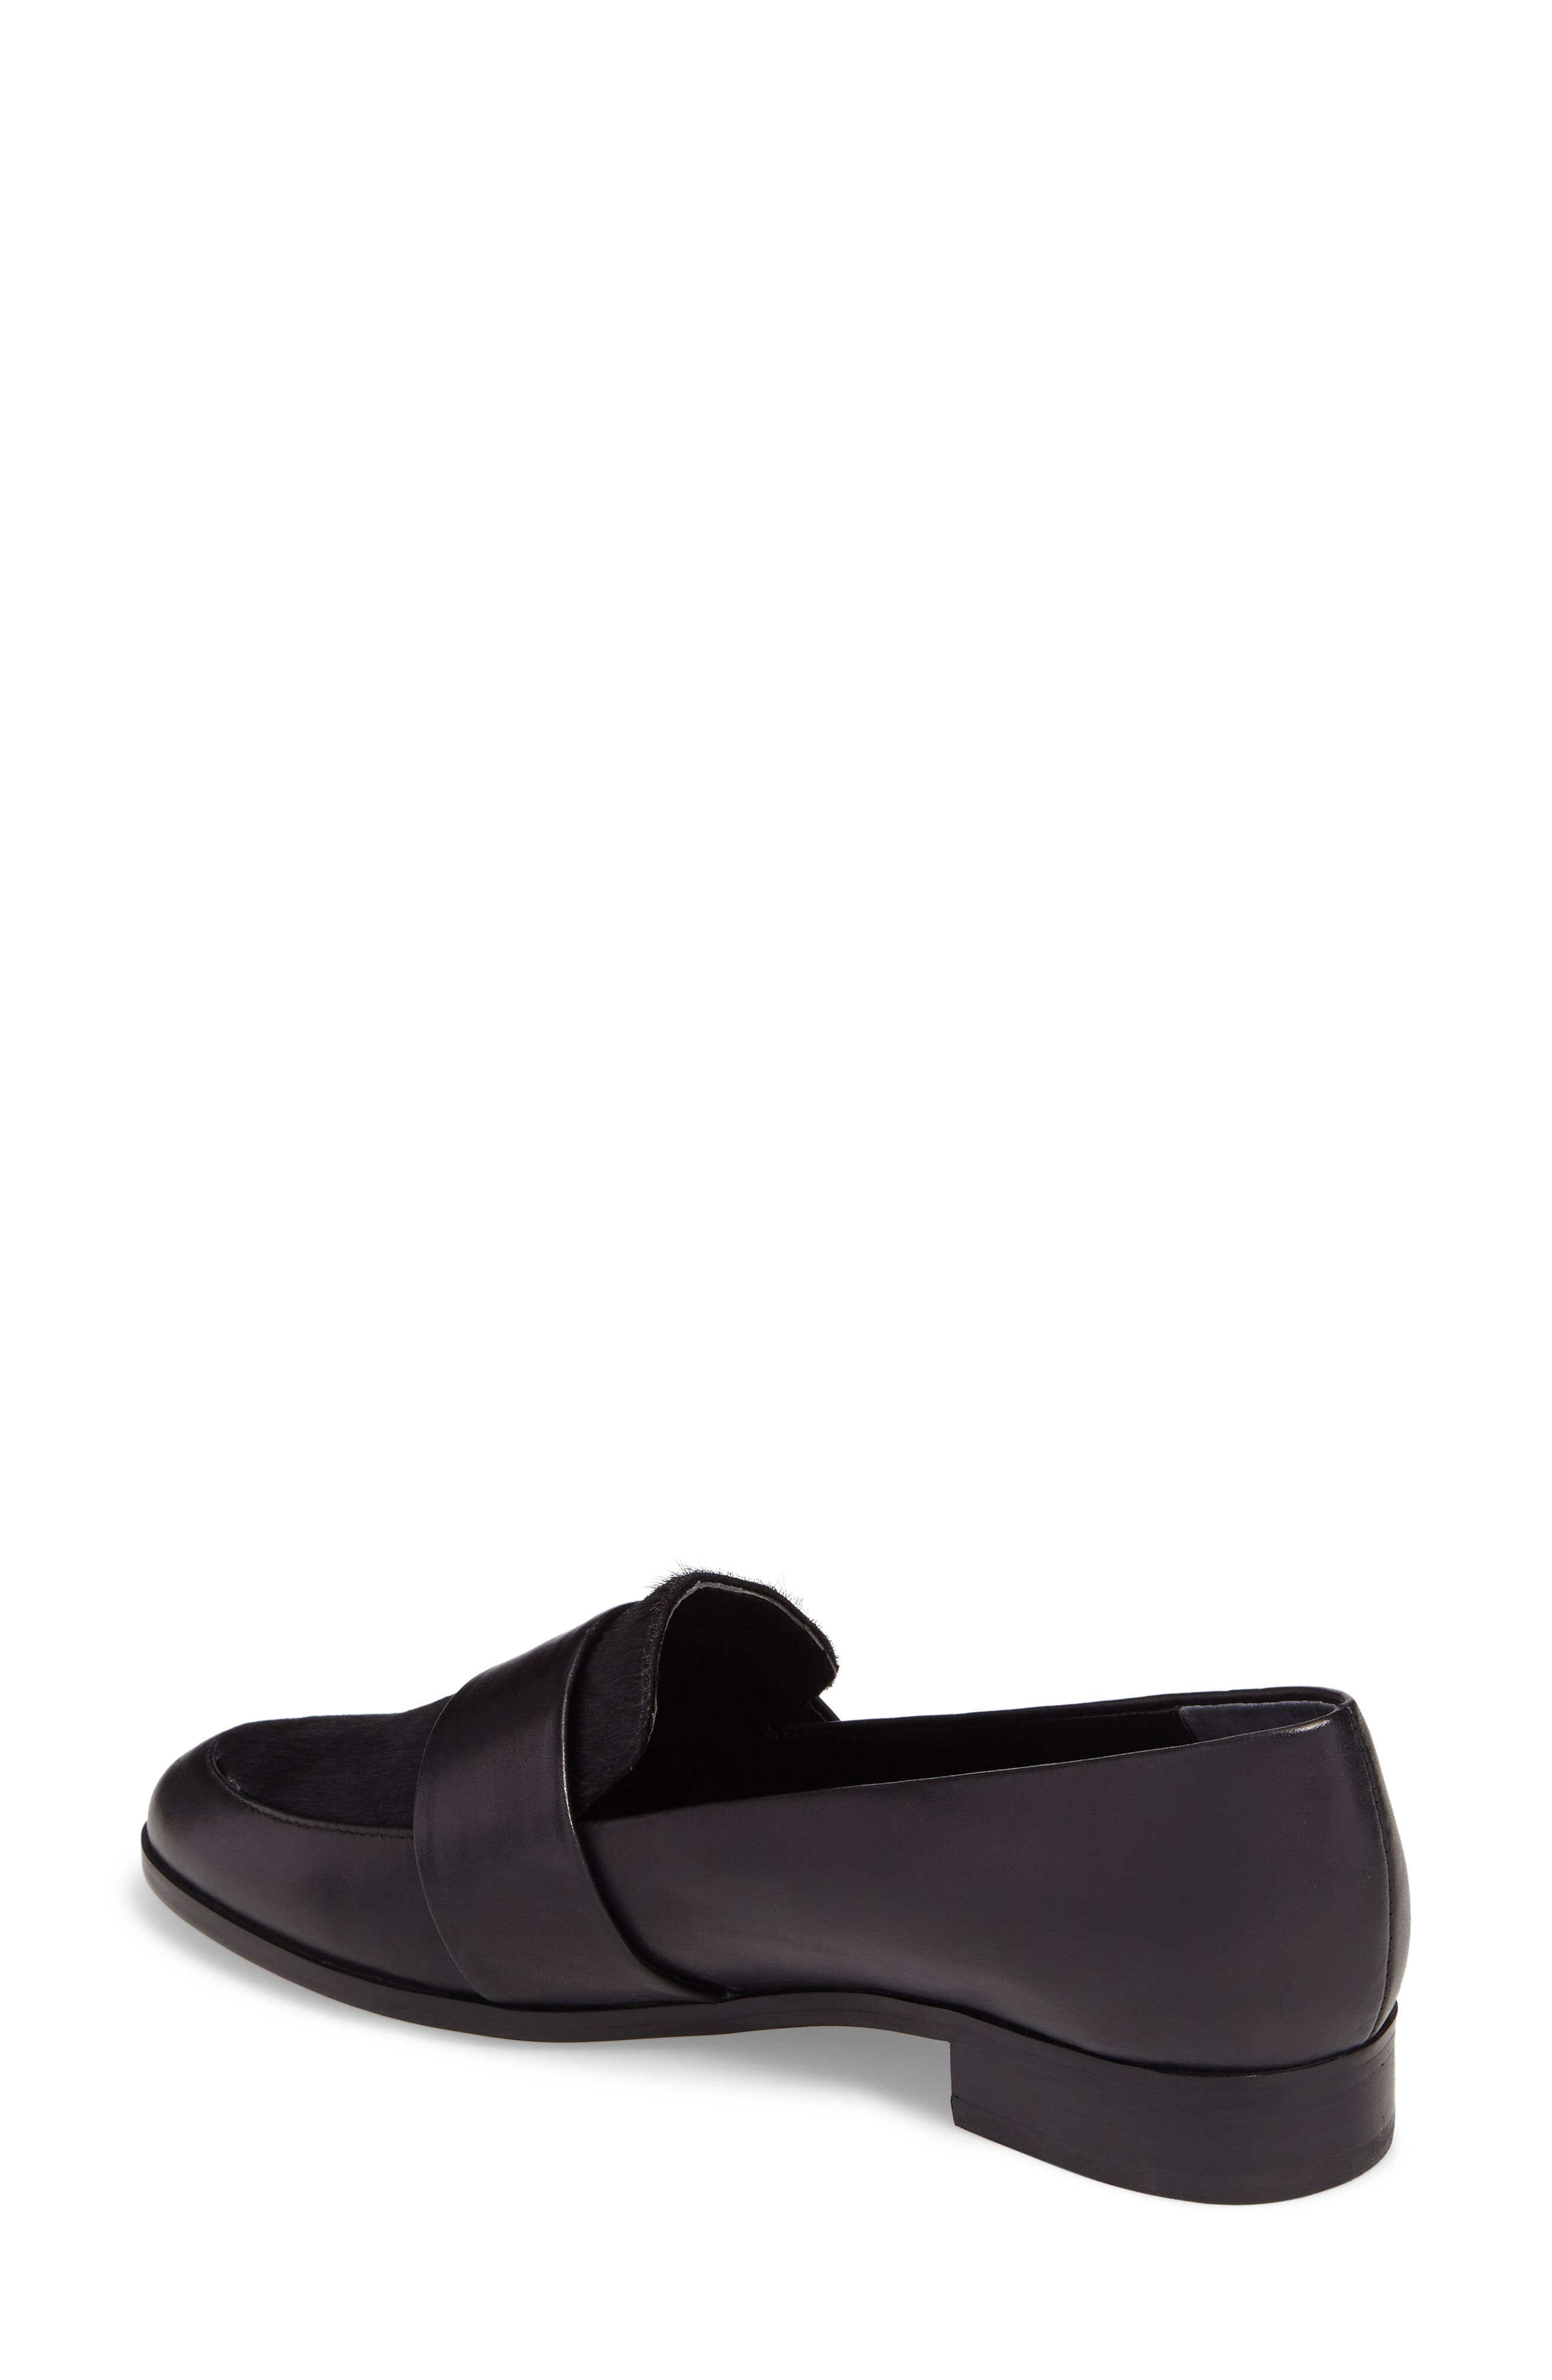 Goldie Loafer,                             Alternate thumbnail 2, color,                             Black Leather/ Calf Hair